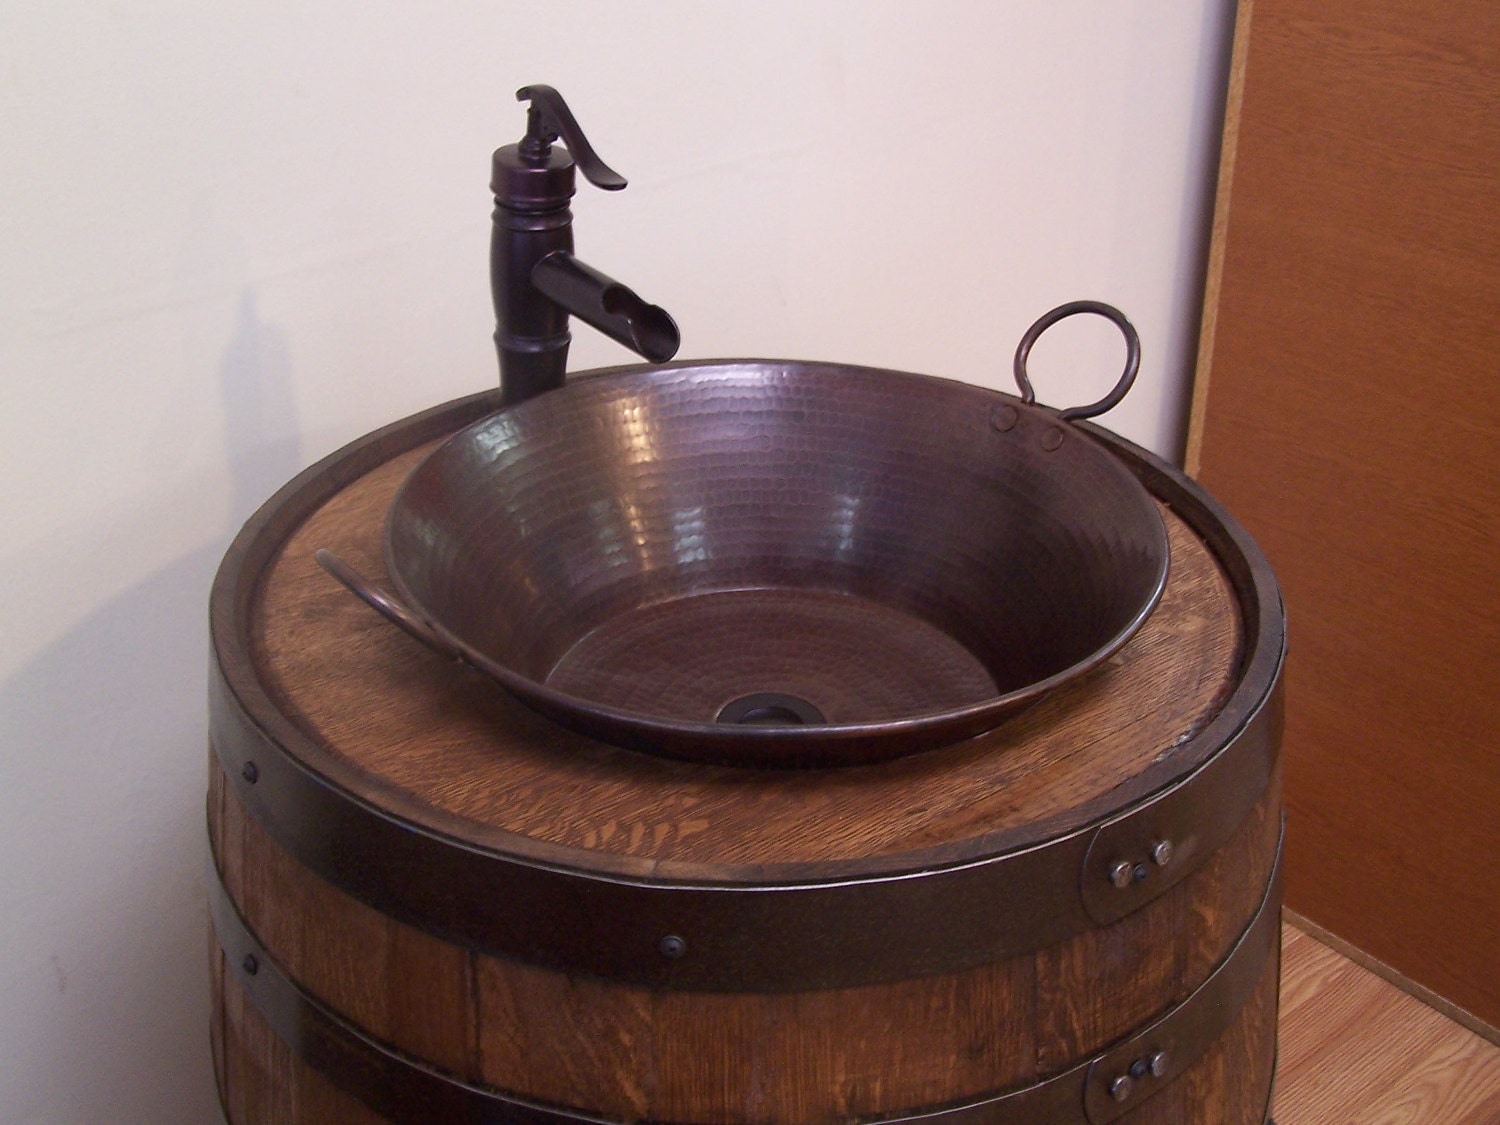 Whiskey Barrel Sink Darker Finish Copper Vessel Sink Bronze